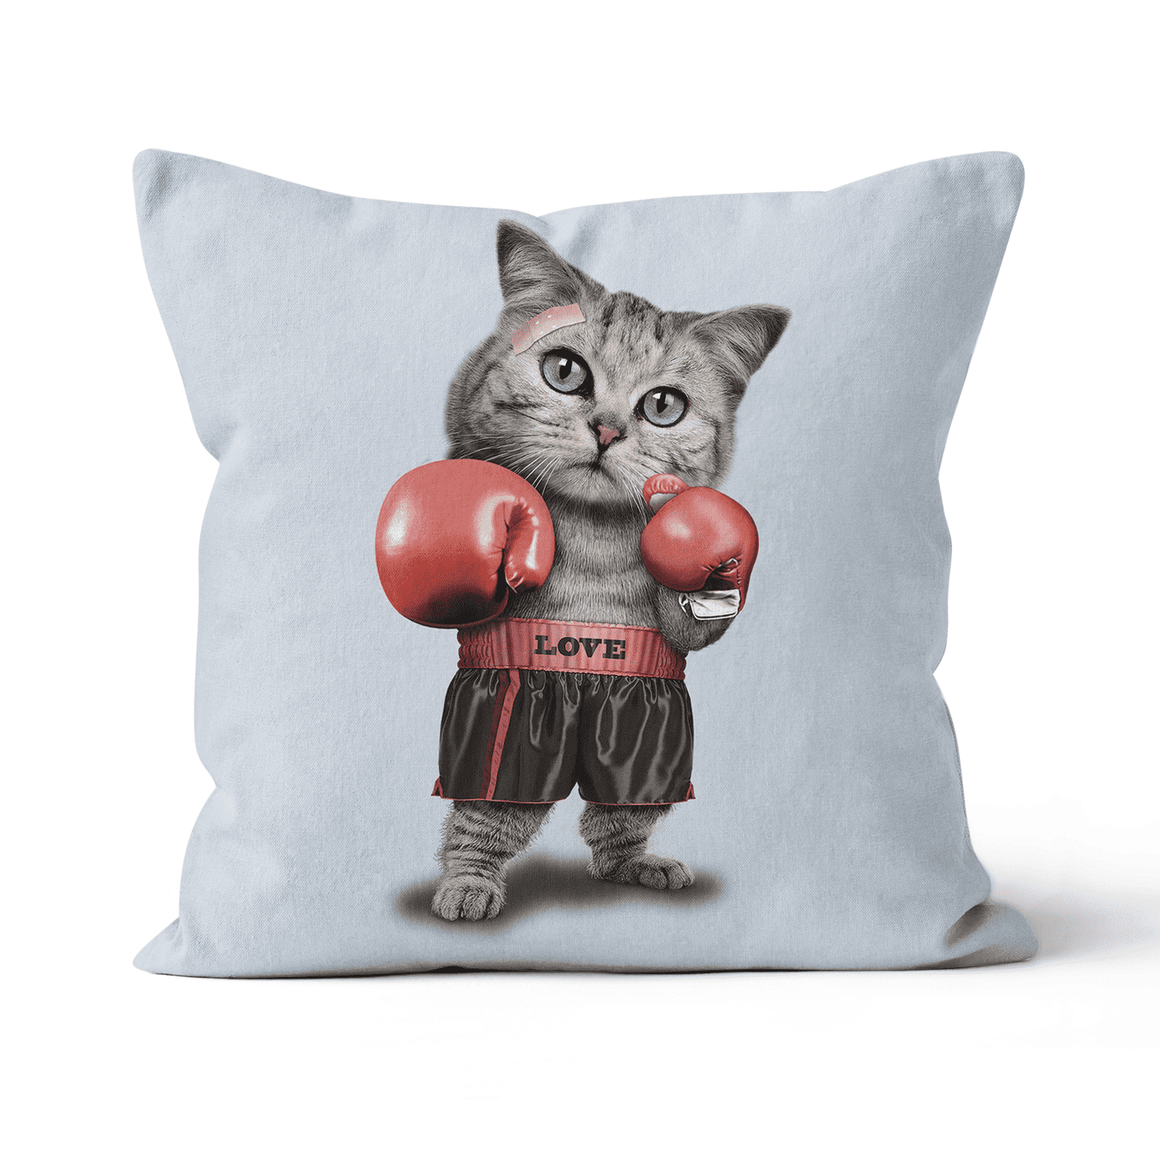 Boxing Cat Premium Throw Cushion / Pillow